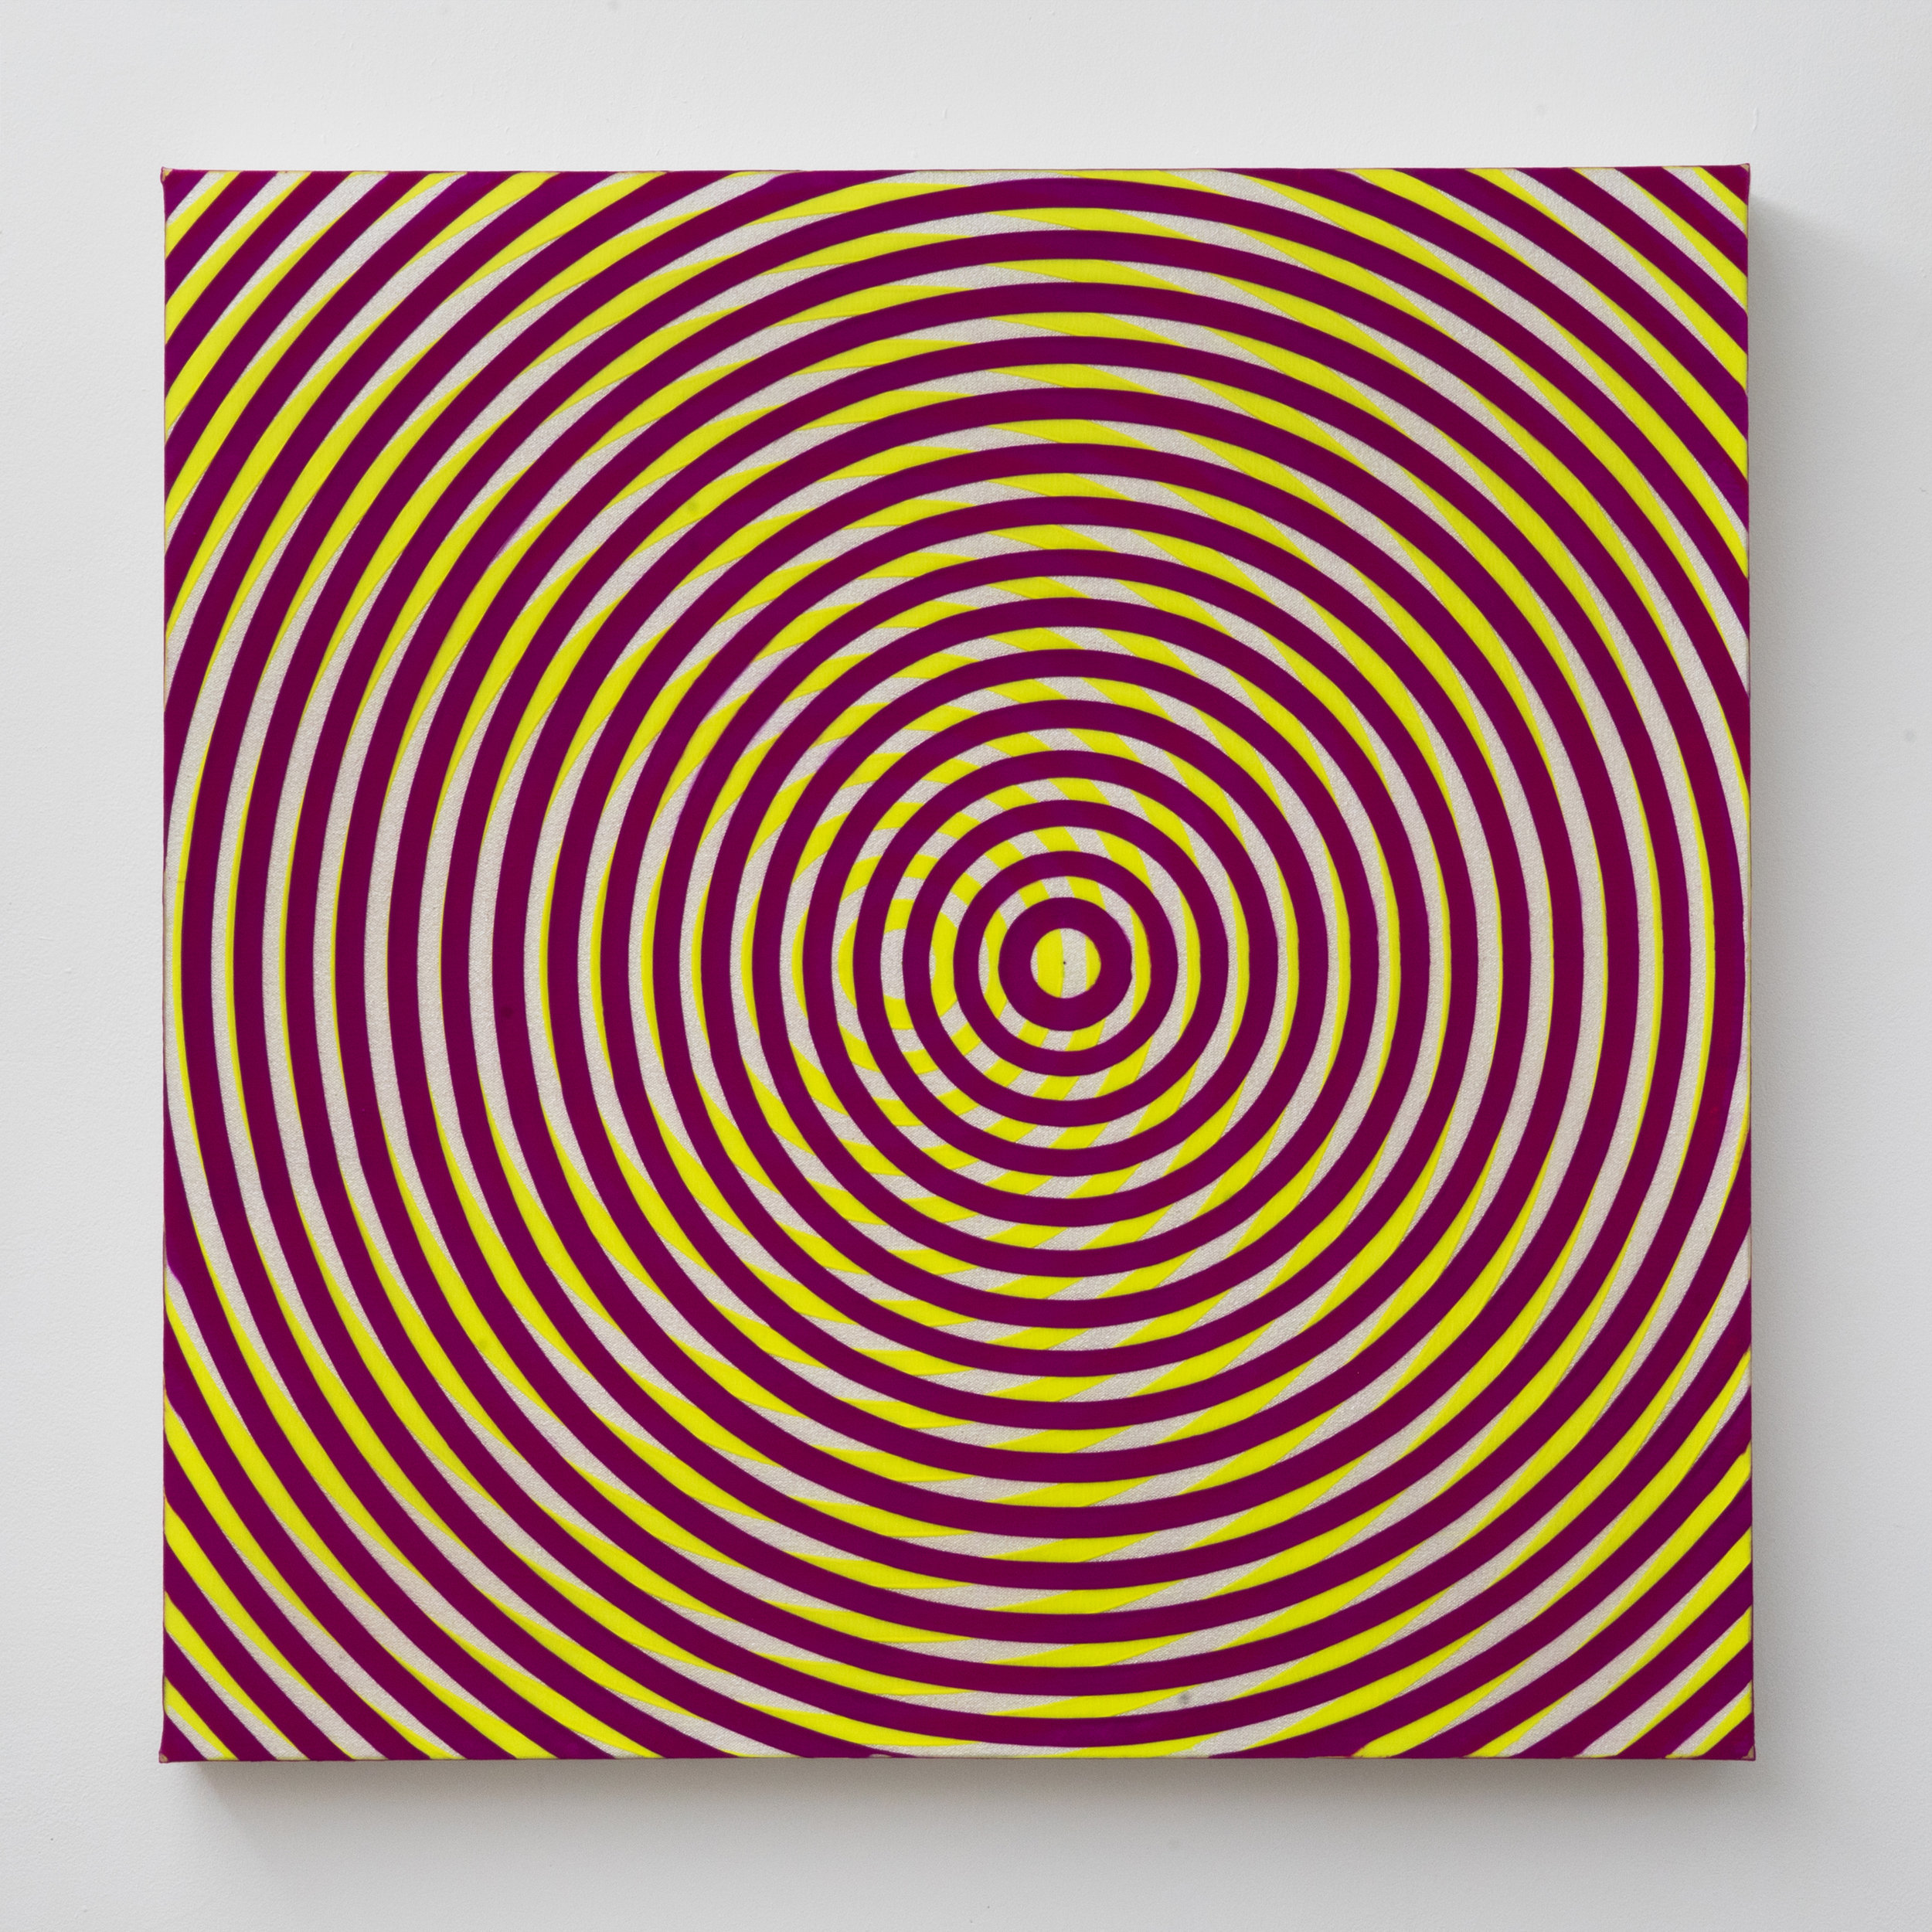 Taro Suzuki.  Helio Trope , 2017. Acrylic on Canvas on Panel. 30 x 30 in.